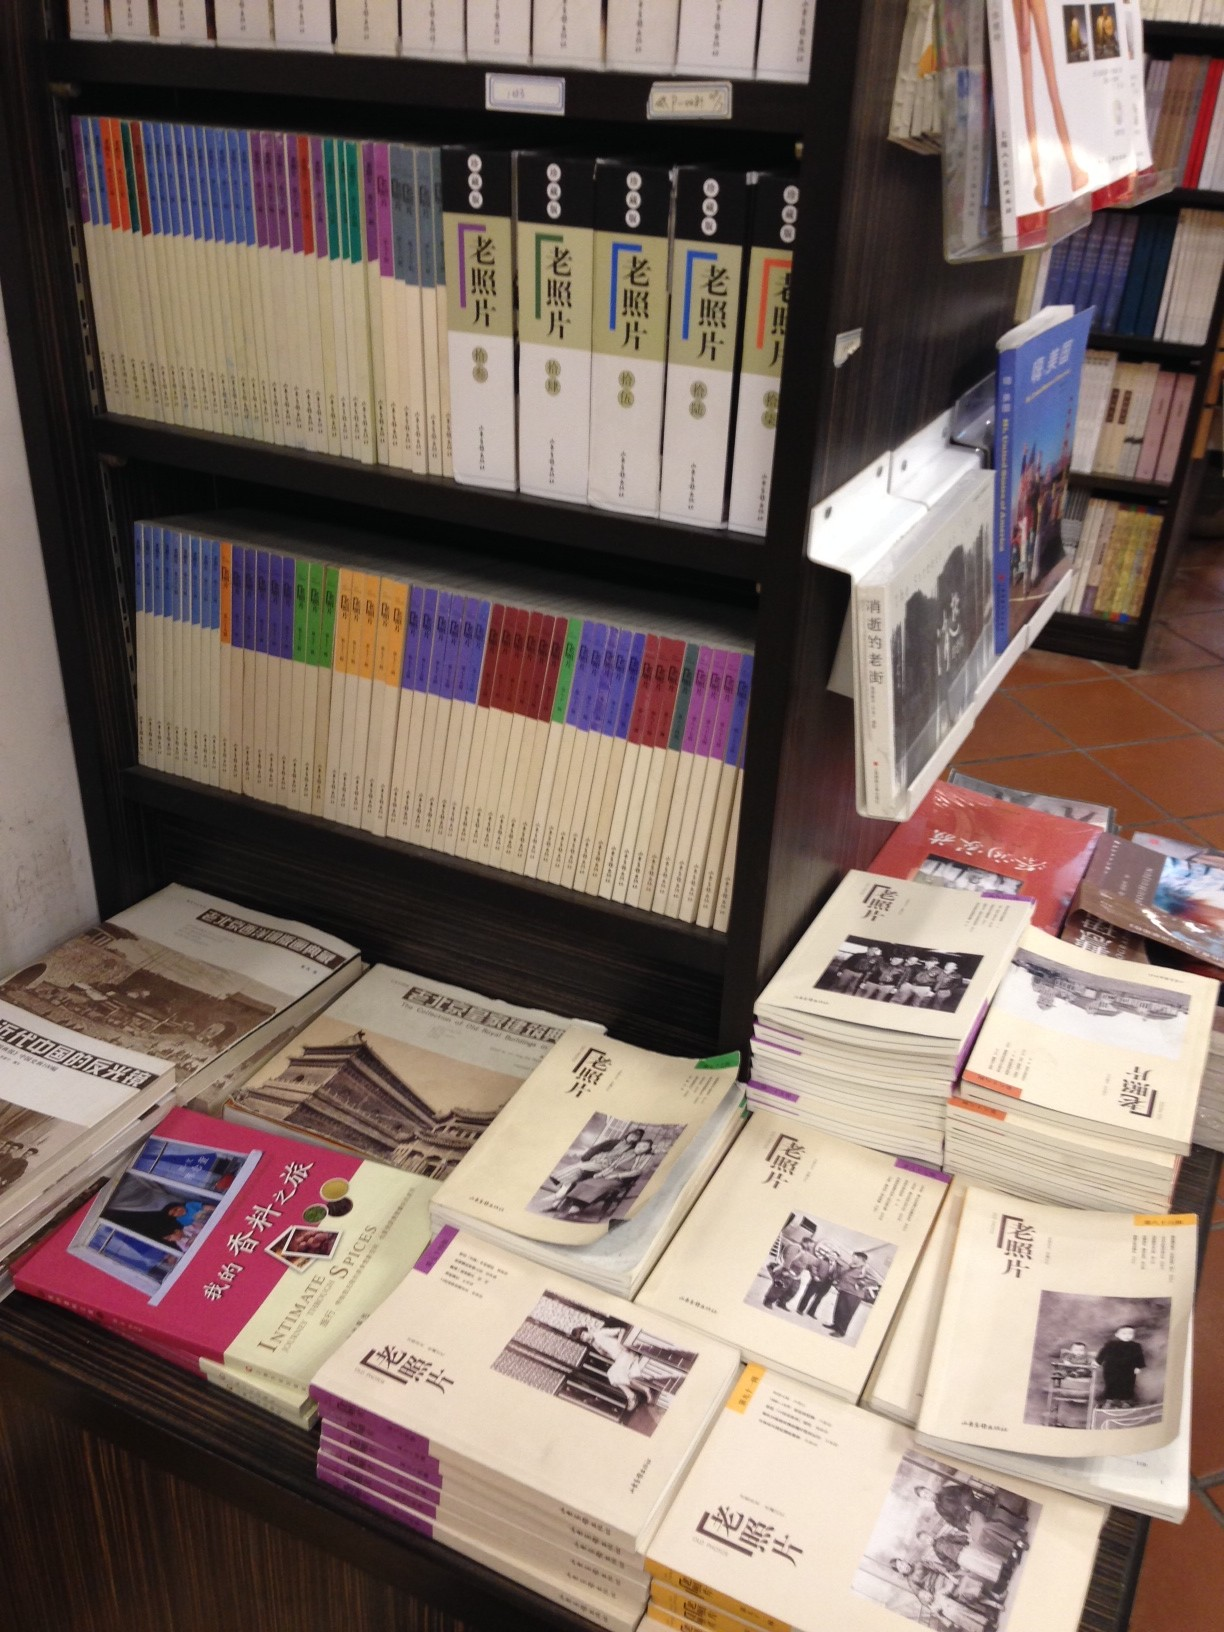 Copies of the magazine Lao zhaopian (Old Photographs) in a Fuzhou road bookstore, Shanghai, Feburary 2014